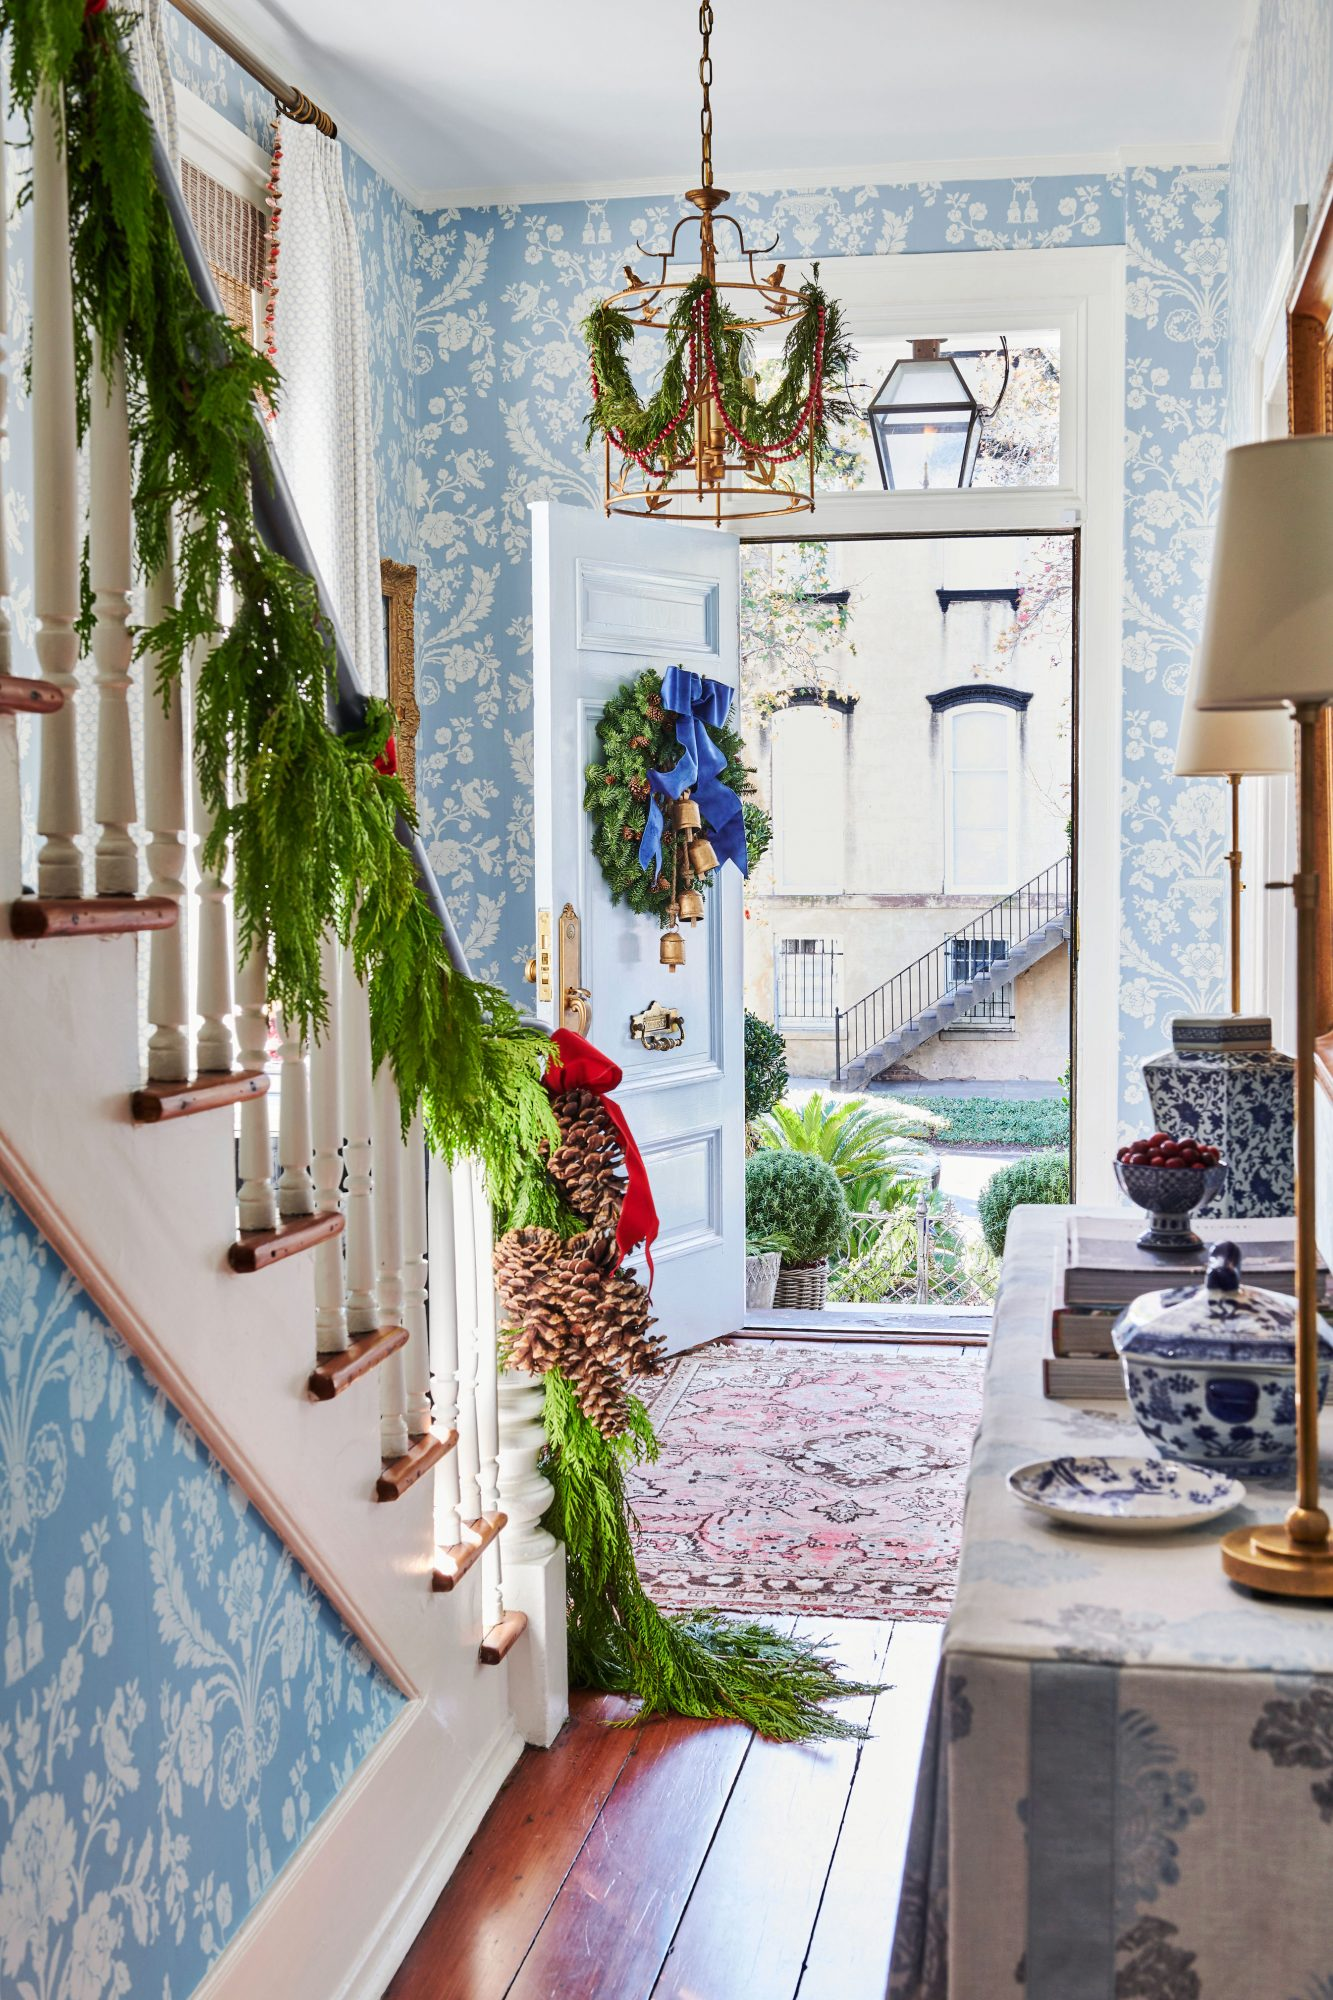 Blue and White wallpapered foyer with stairs draped in greenery for Christmas